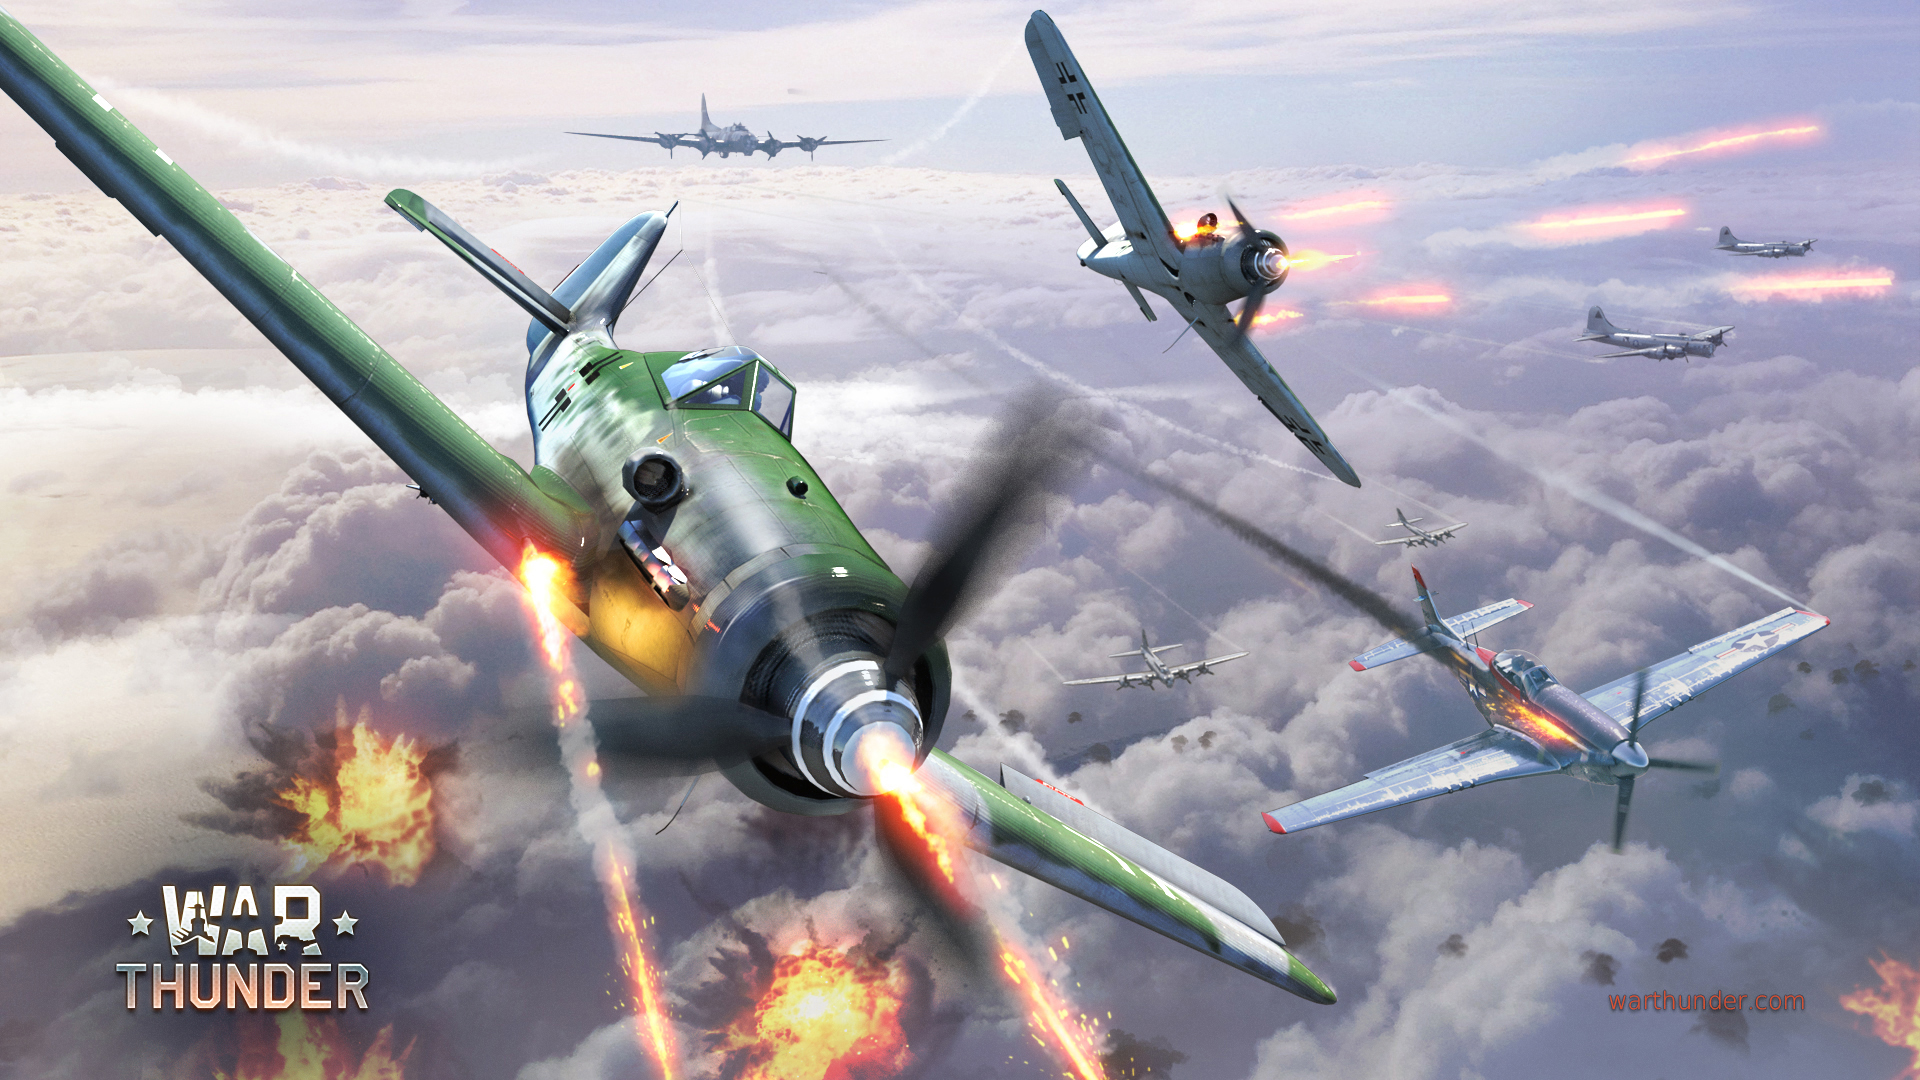 Wallpaper War Thunder Fw190 419075 Hd Wallpaper